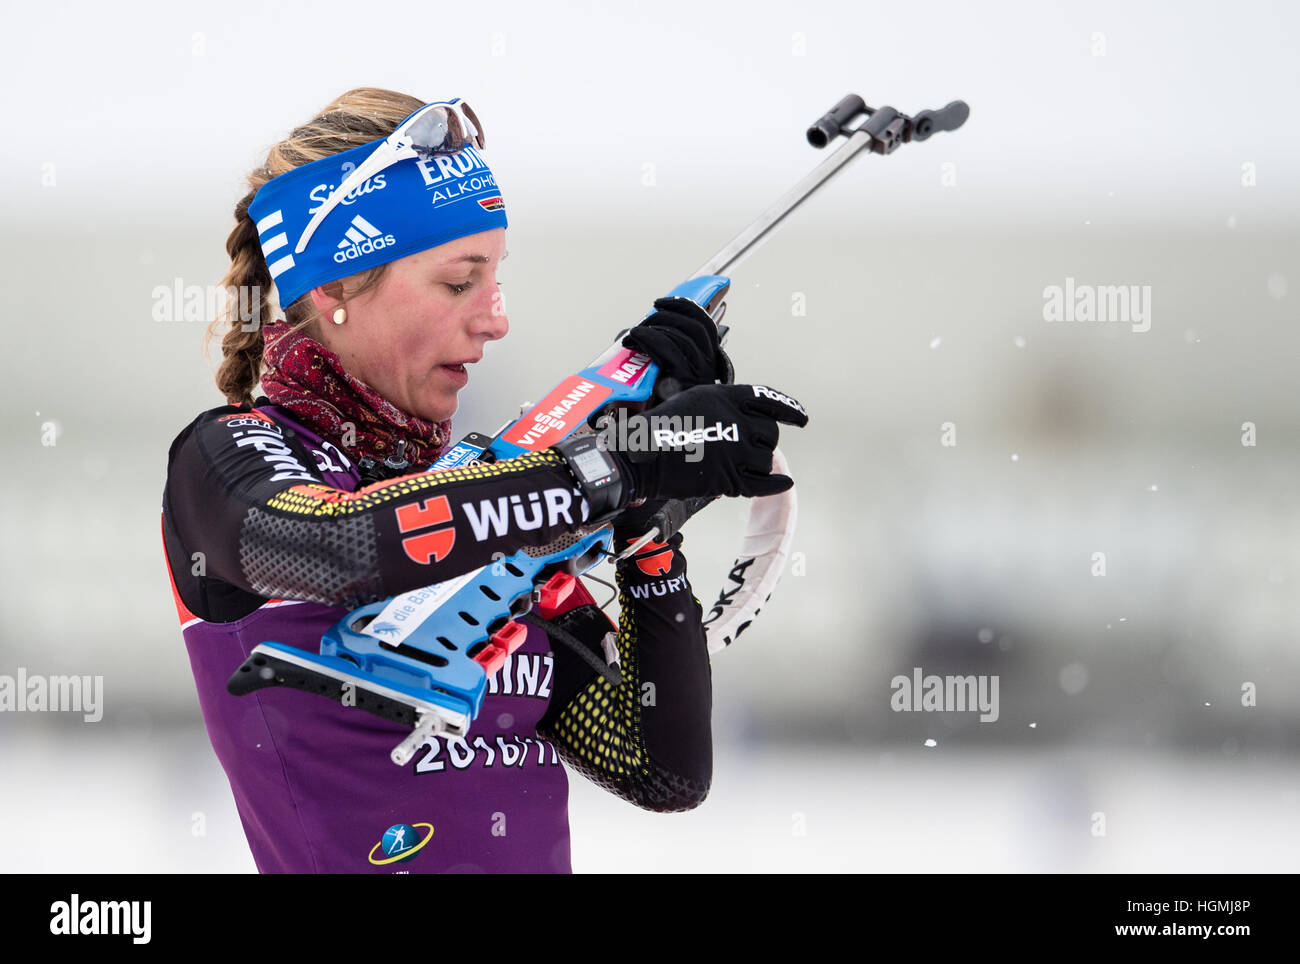 Ruhpolding, Germany. 11th Jan, 2017. Vanessa Hinz of Germany training at the shooting range during the Biathlon - Stock Image